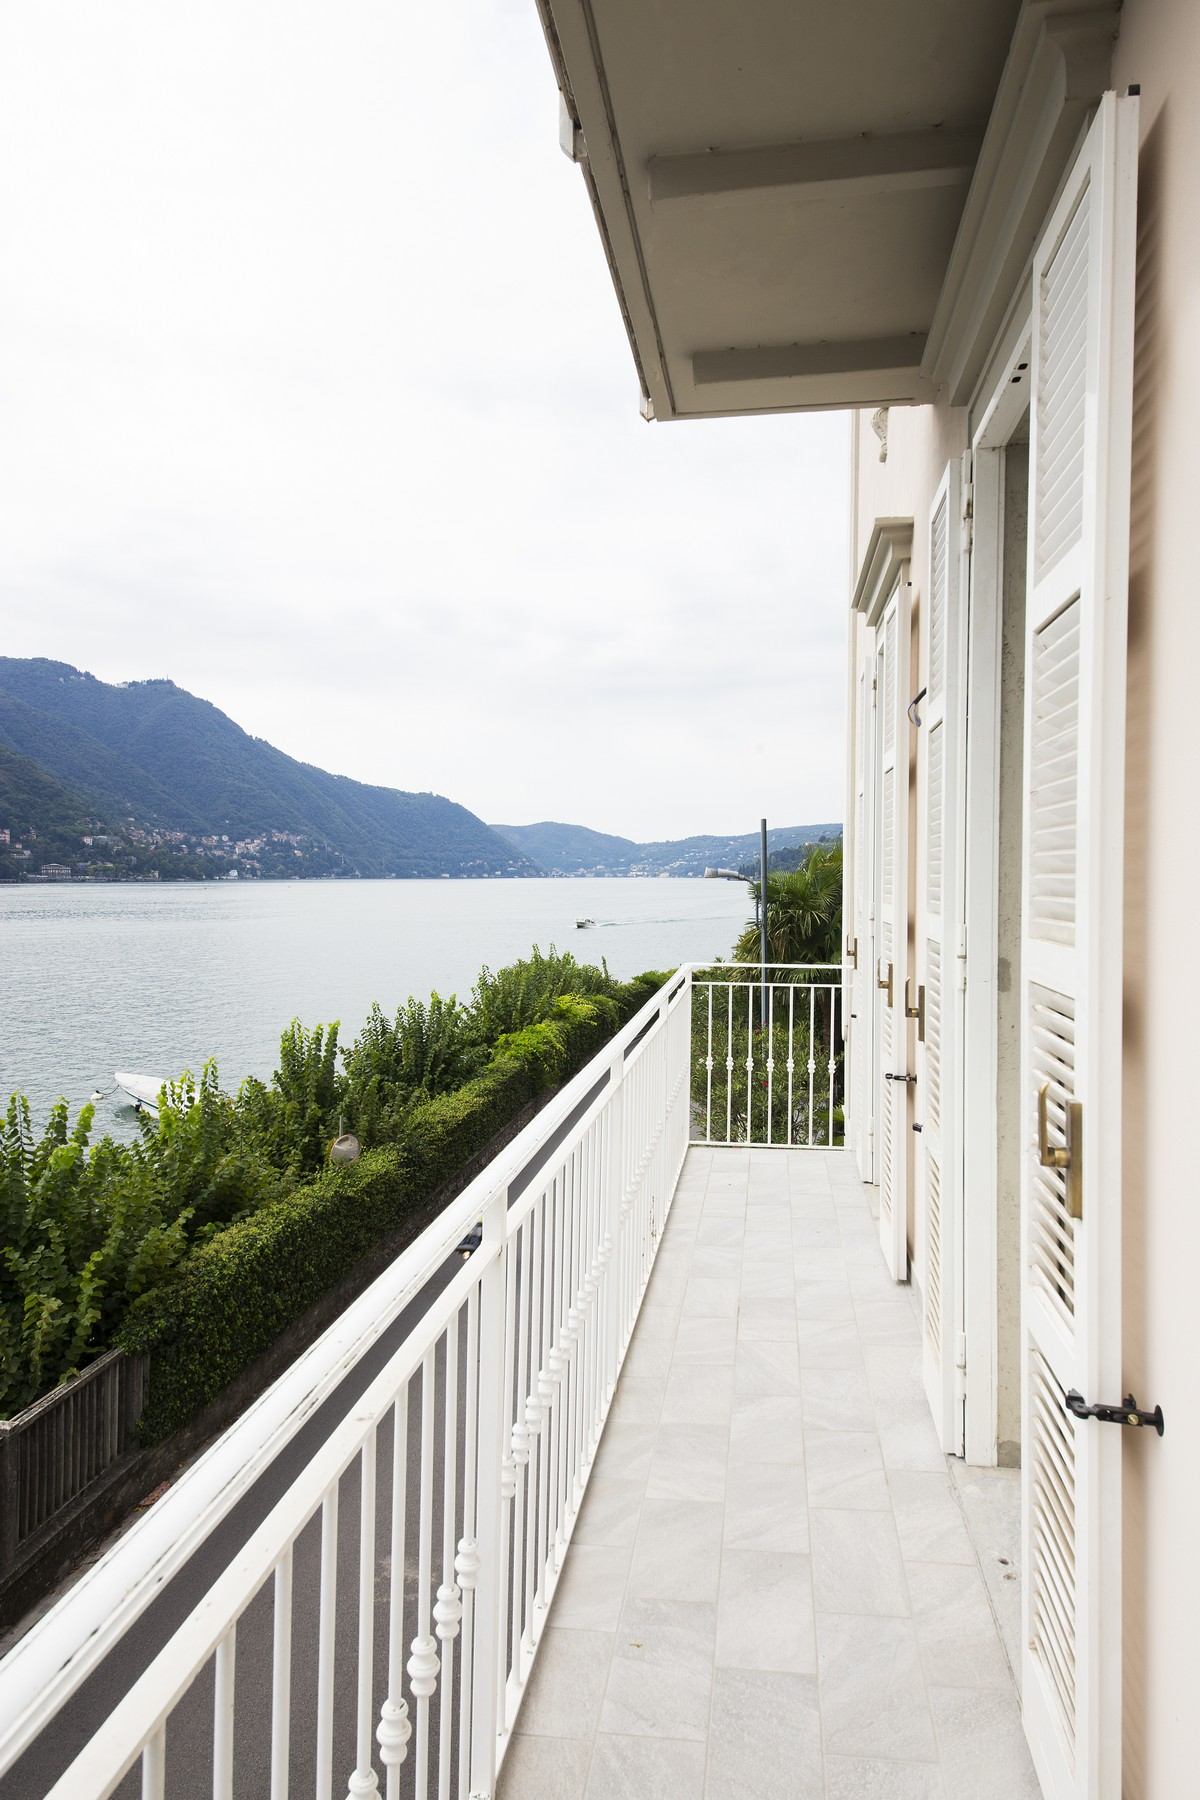 Additional photo for property listing at Fantastic villa liberty pieds dans l'eau on Lake Como Via Regina Vecchia Carate Urio, Como 22010 Italie